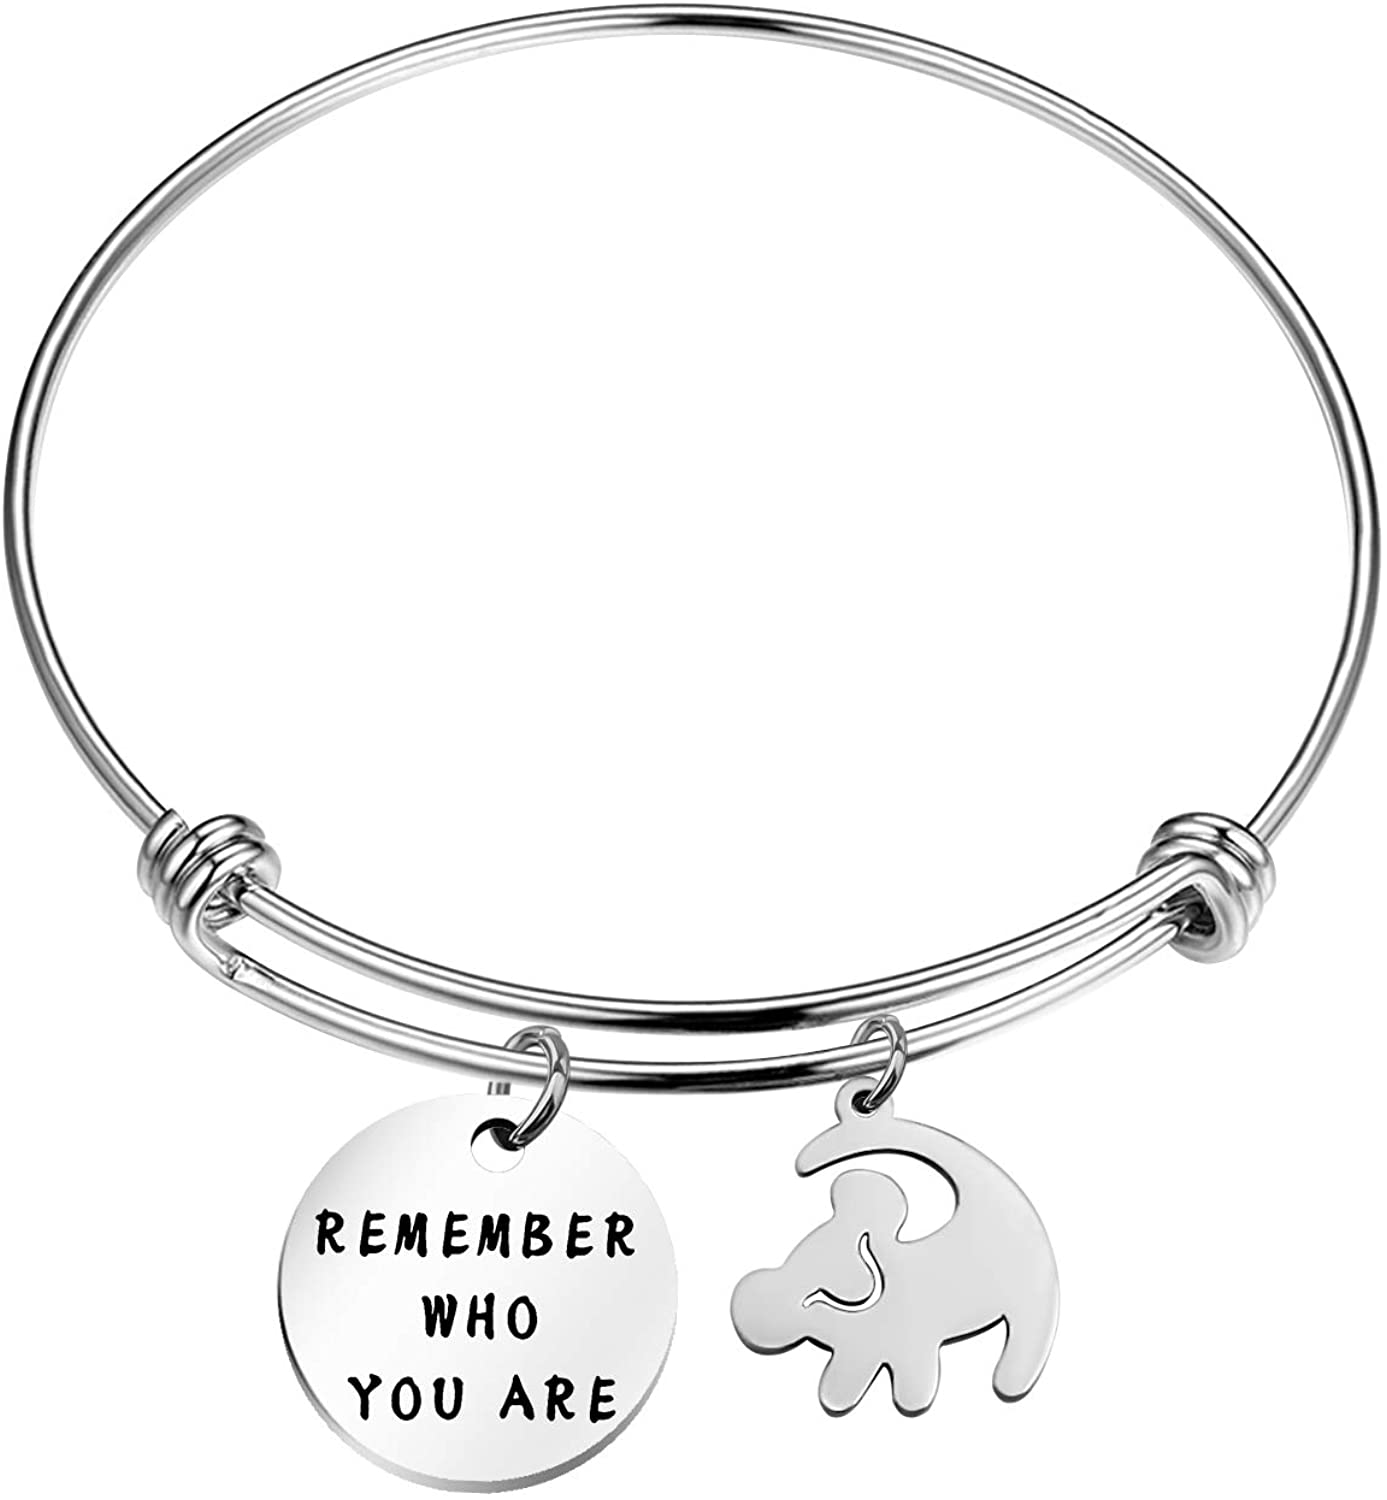 TGBJE Remember Who You are Bracelet Inspired Bangle Lion King Gift for Friend